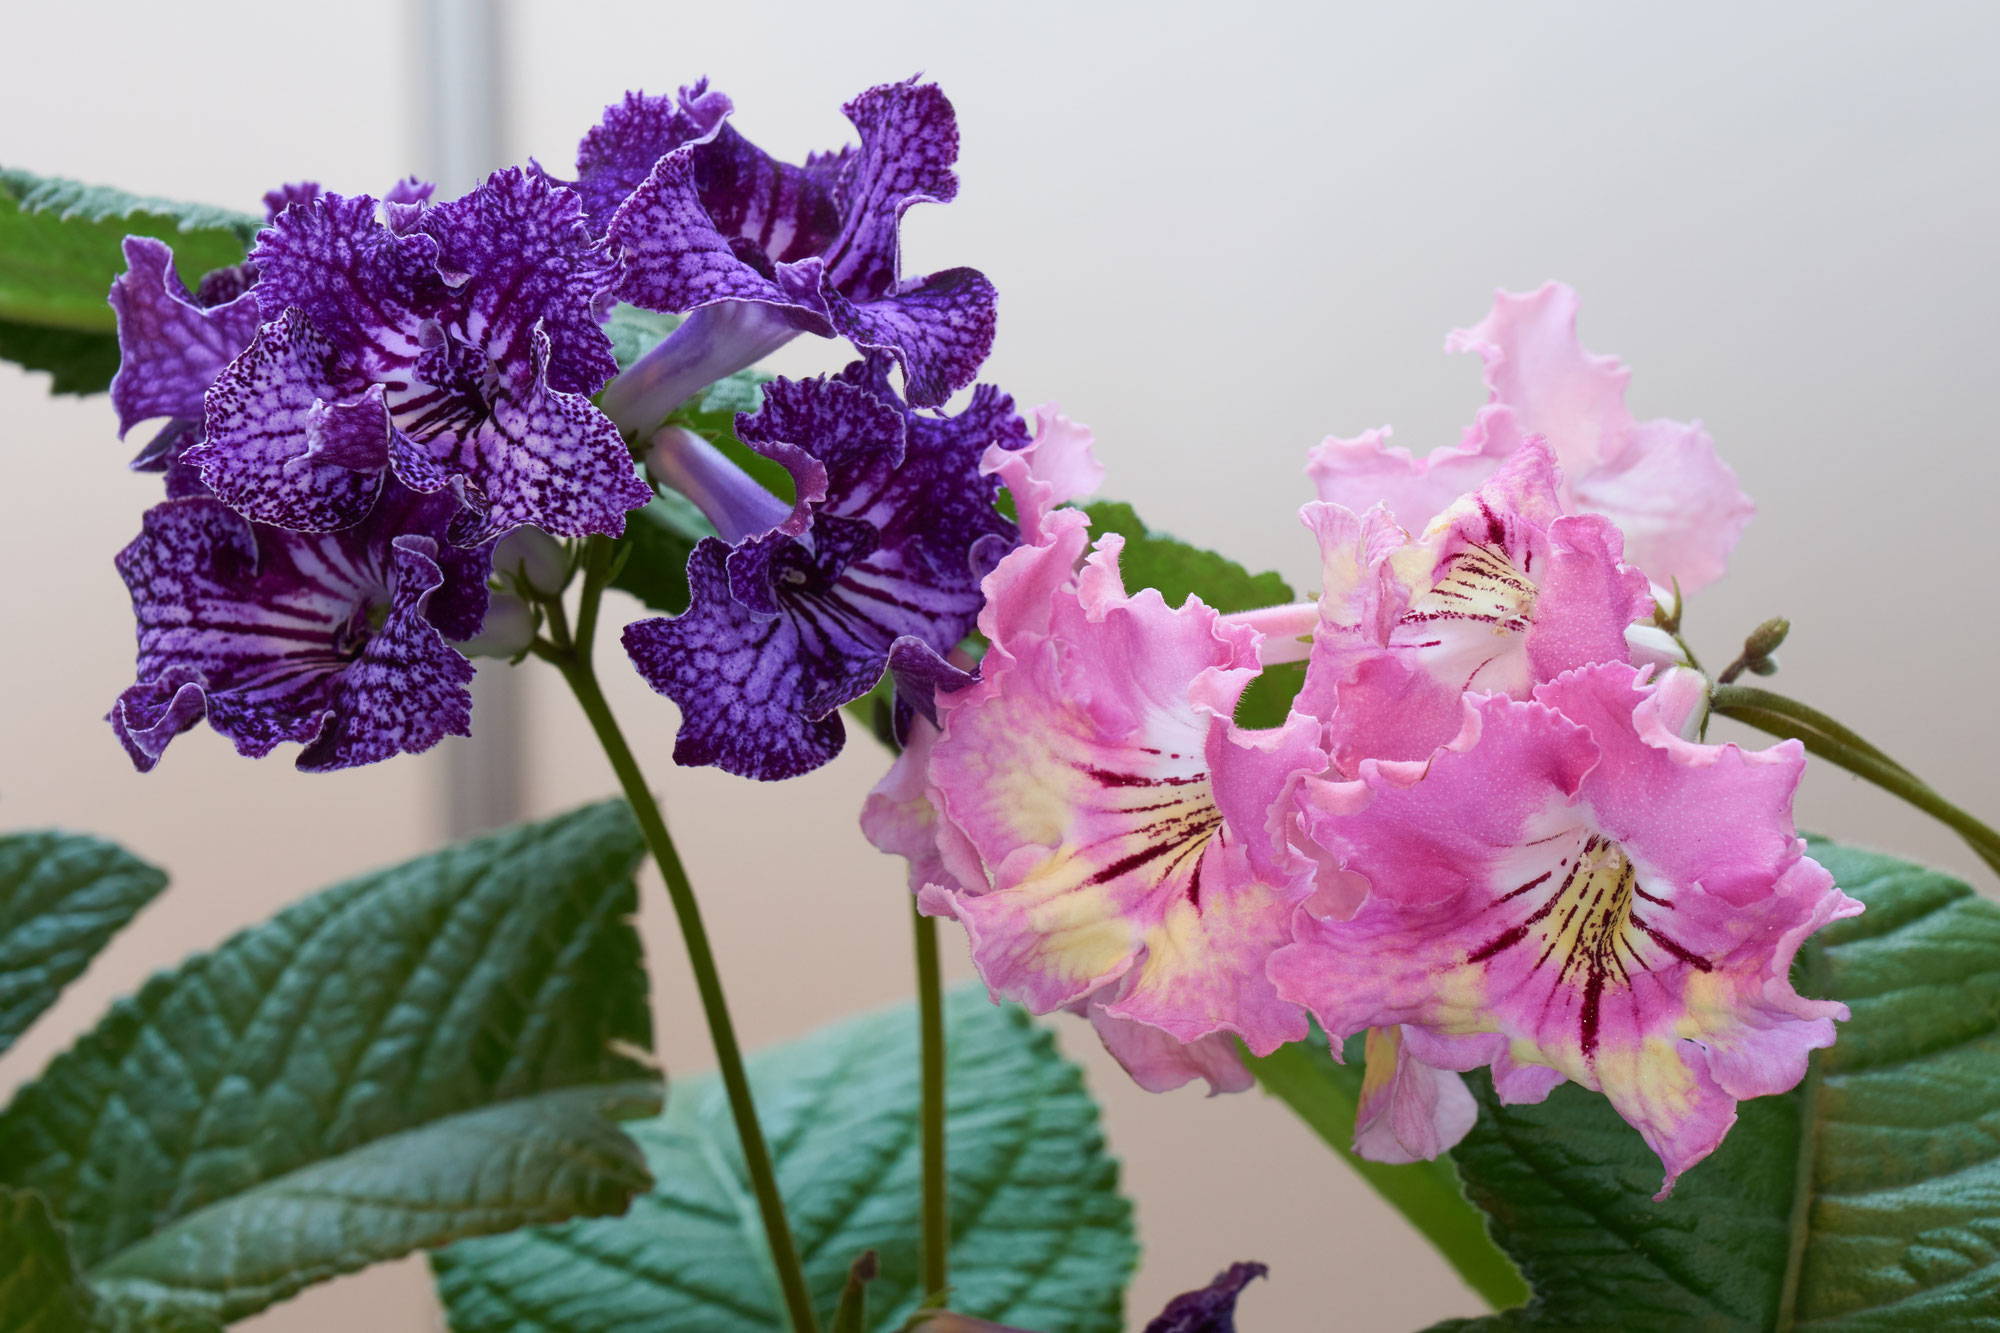 Streptocarpus: characteristics, care and curiosities